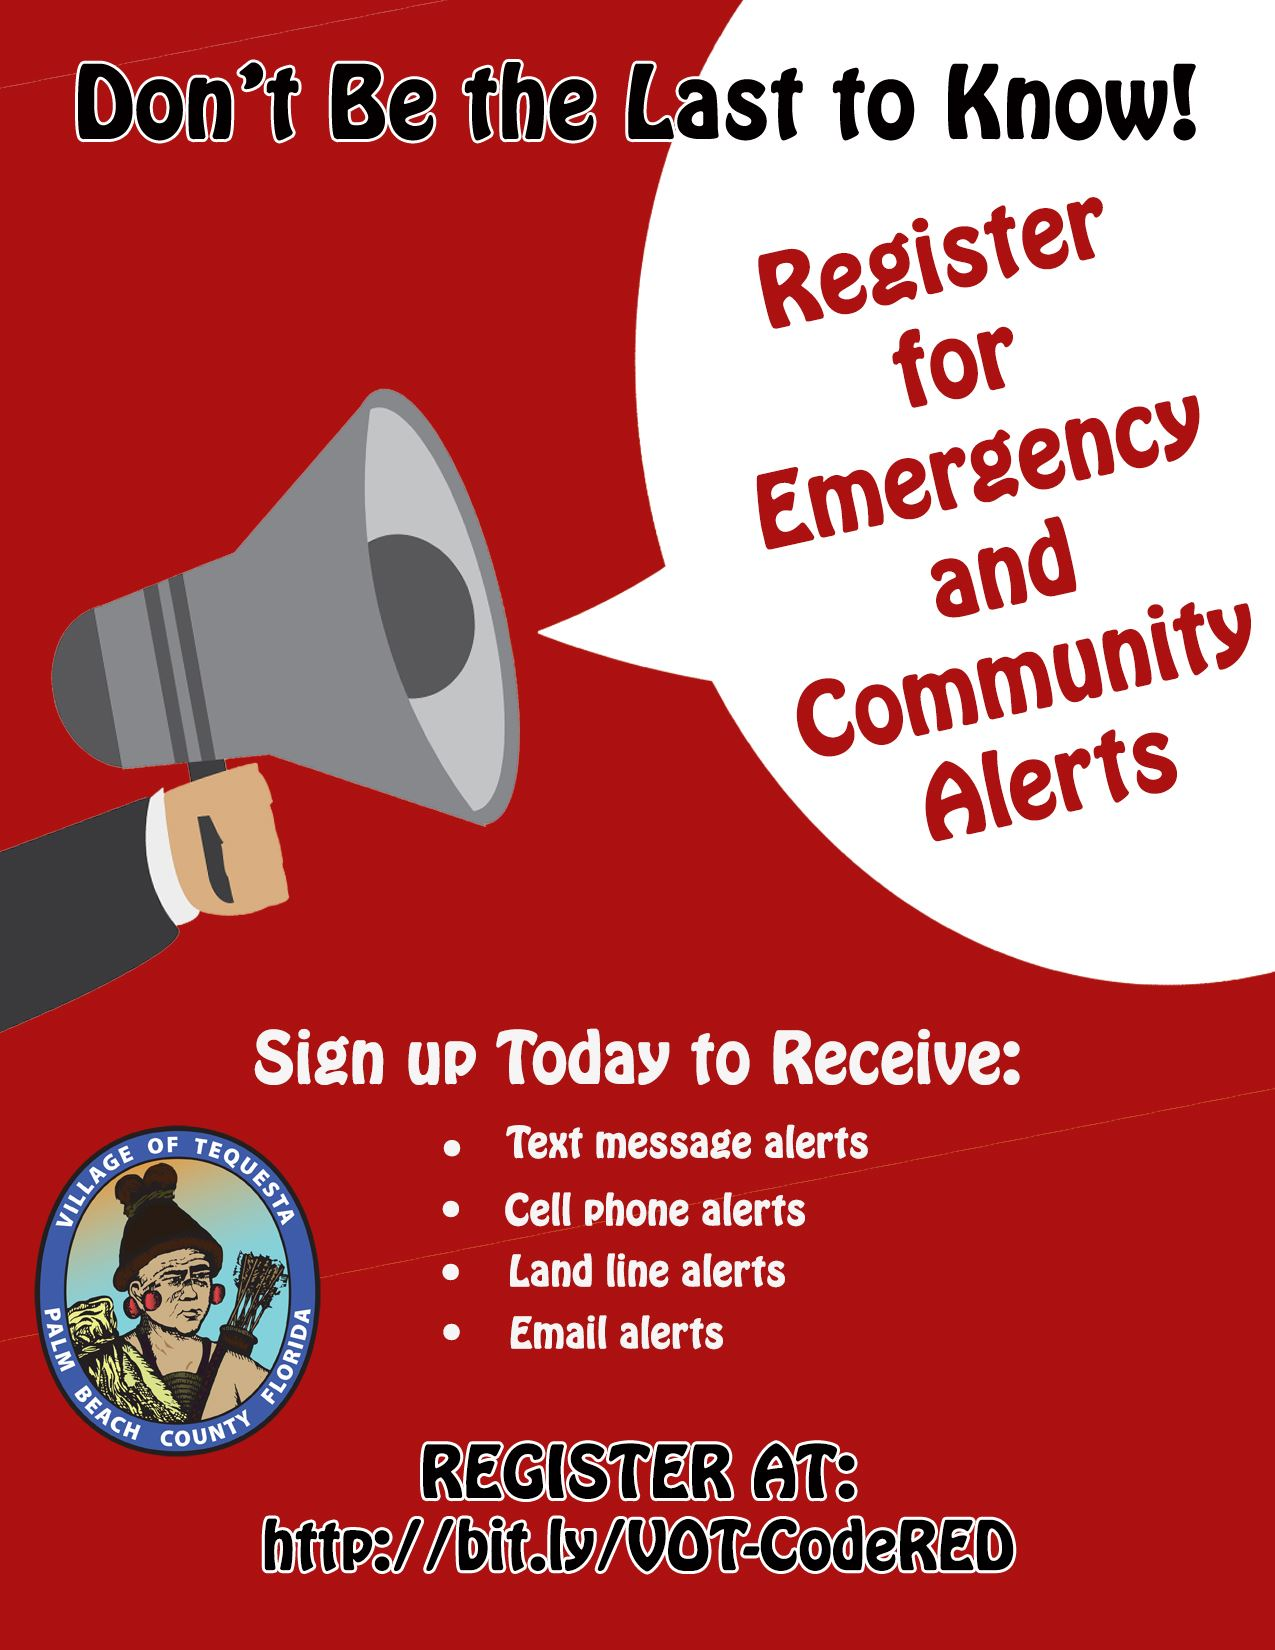 Register for Alerts http://bit.ly/VOT-CodeRED